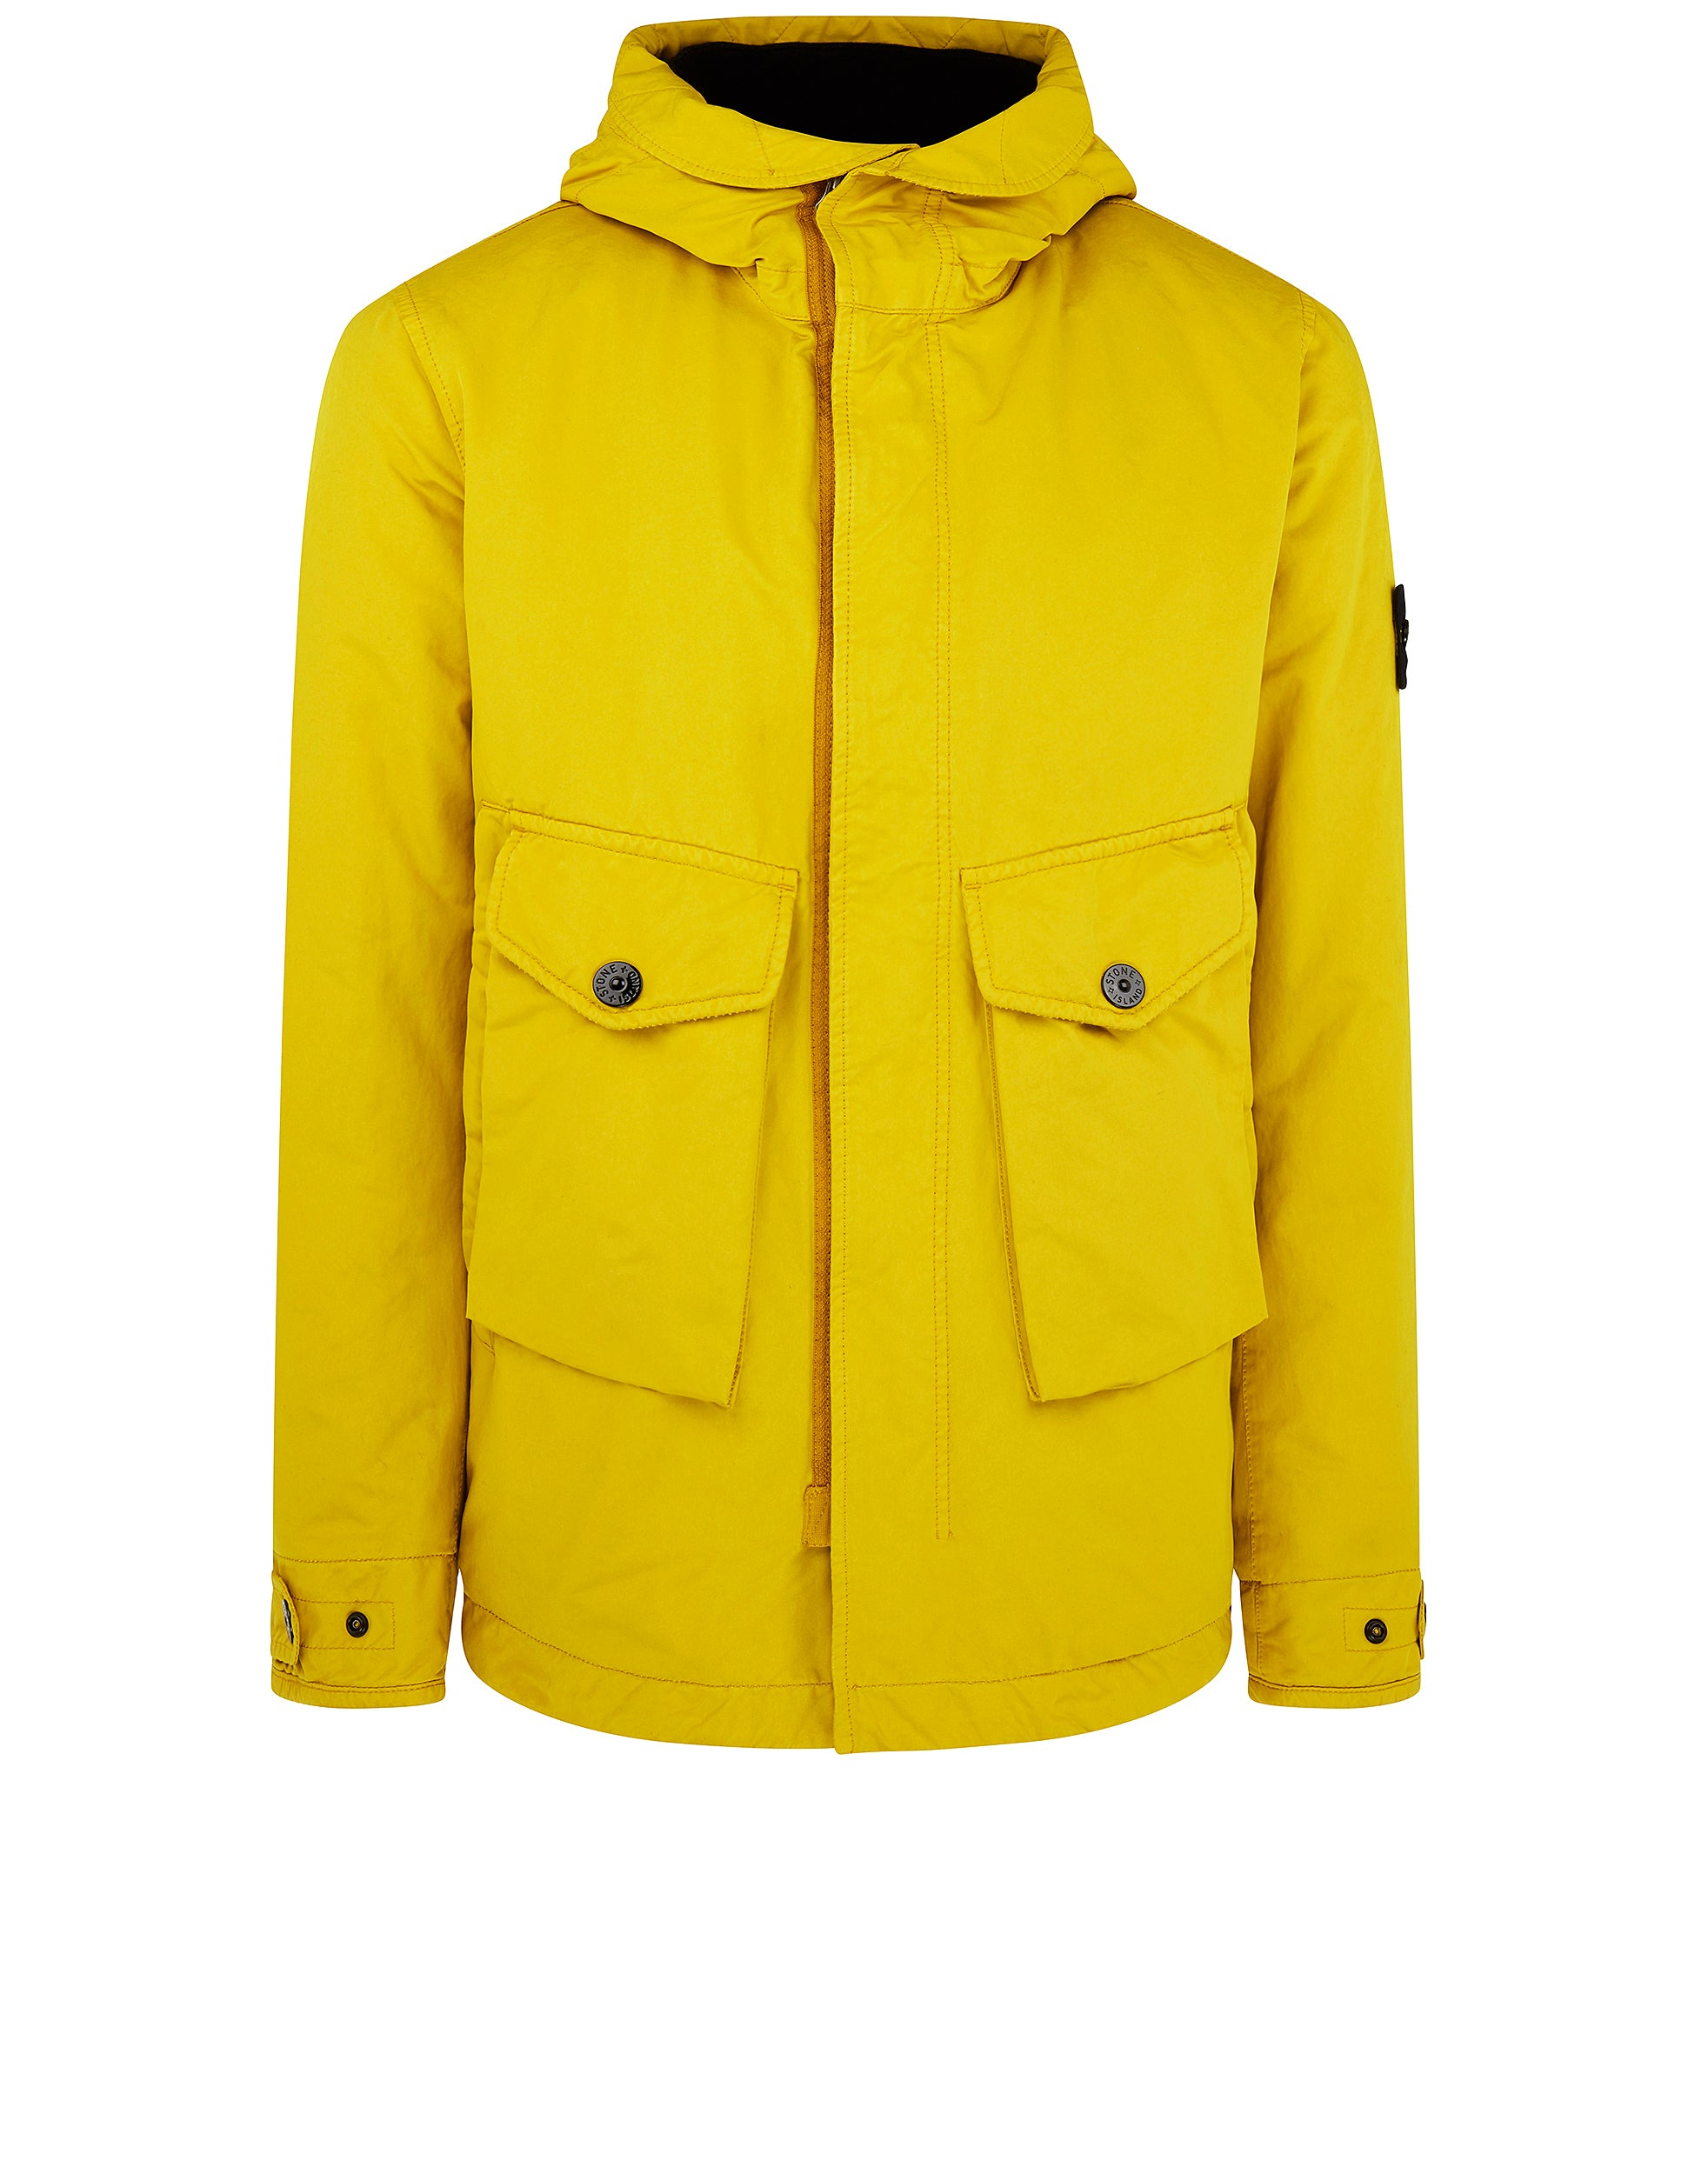 43249 DAVID-TC WITH PRIMALOFT® INSULATION TECHNOLOGY Jacket in Mustard